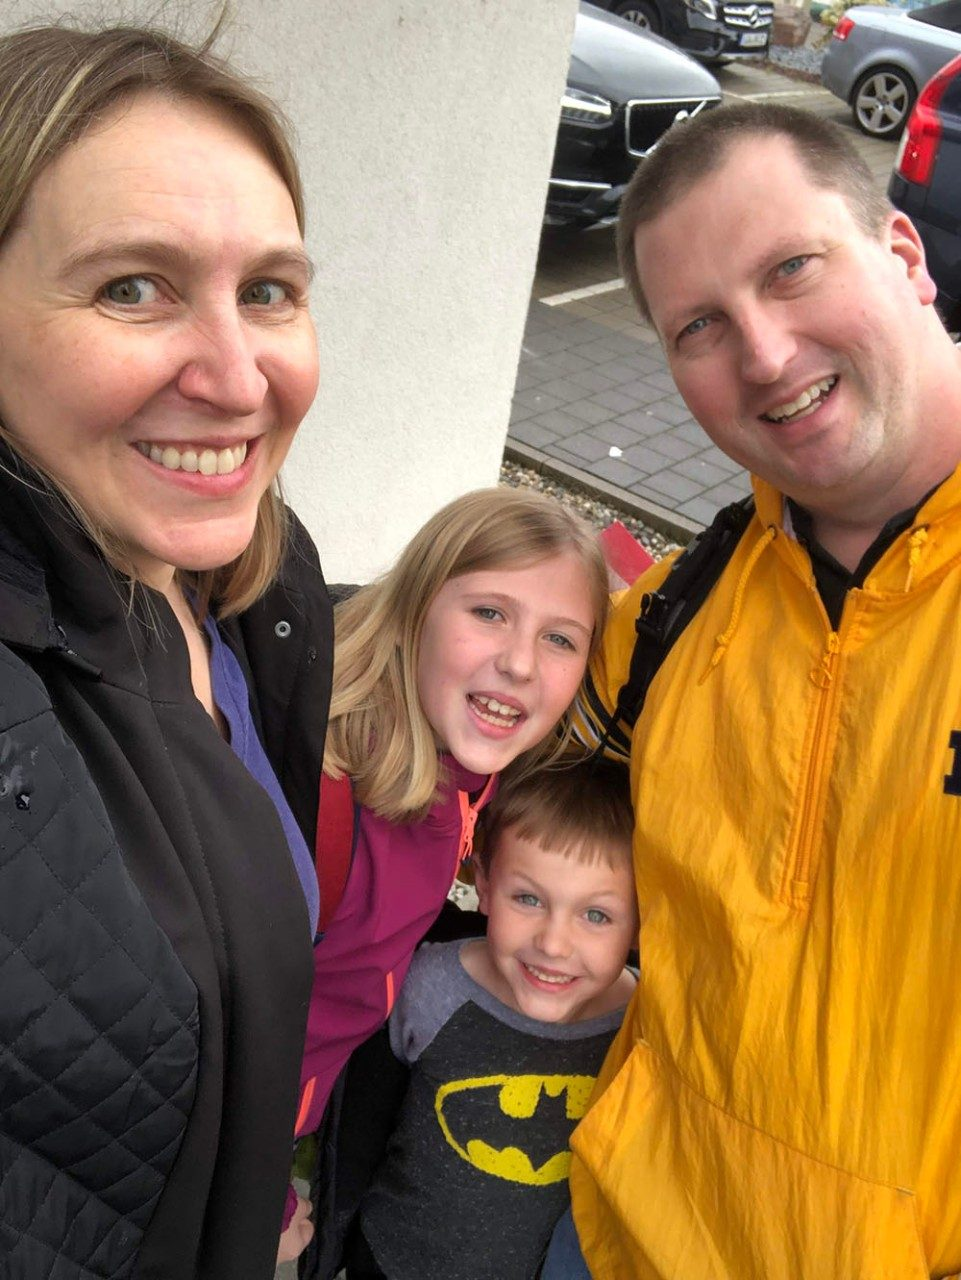 The Wittkopp family – Trisha, Morgan, Jacob, Keith – in Heidelberg where Trisha was on sabbatical in 2019.